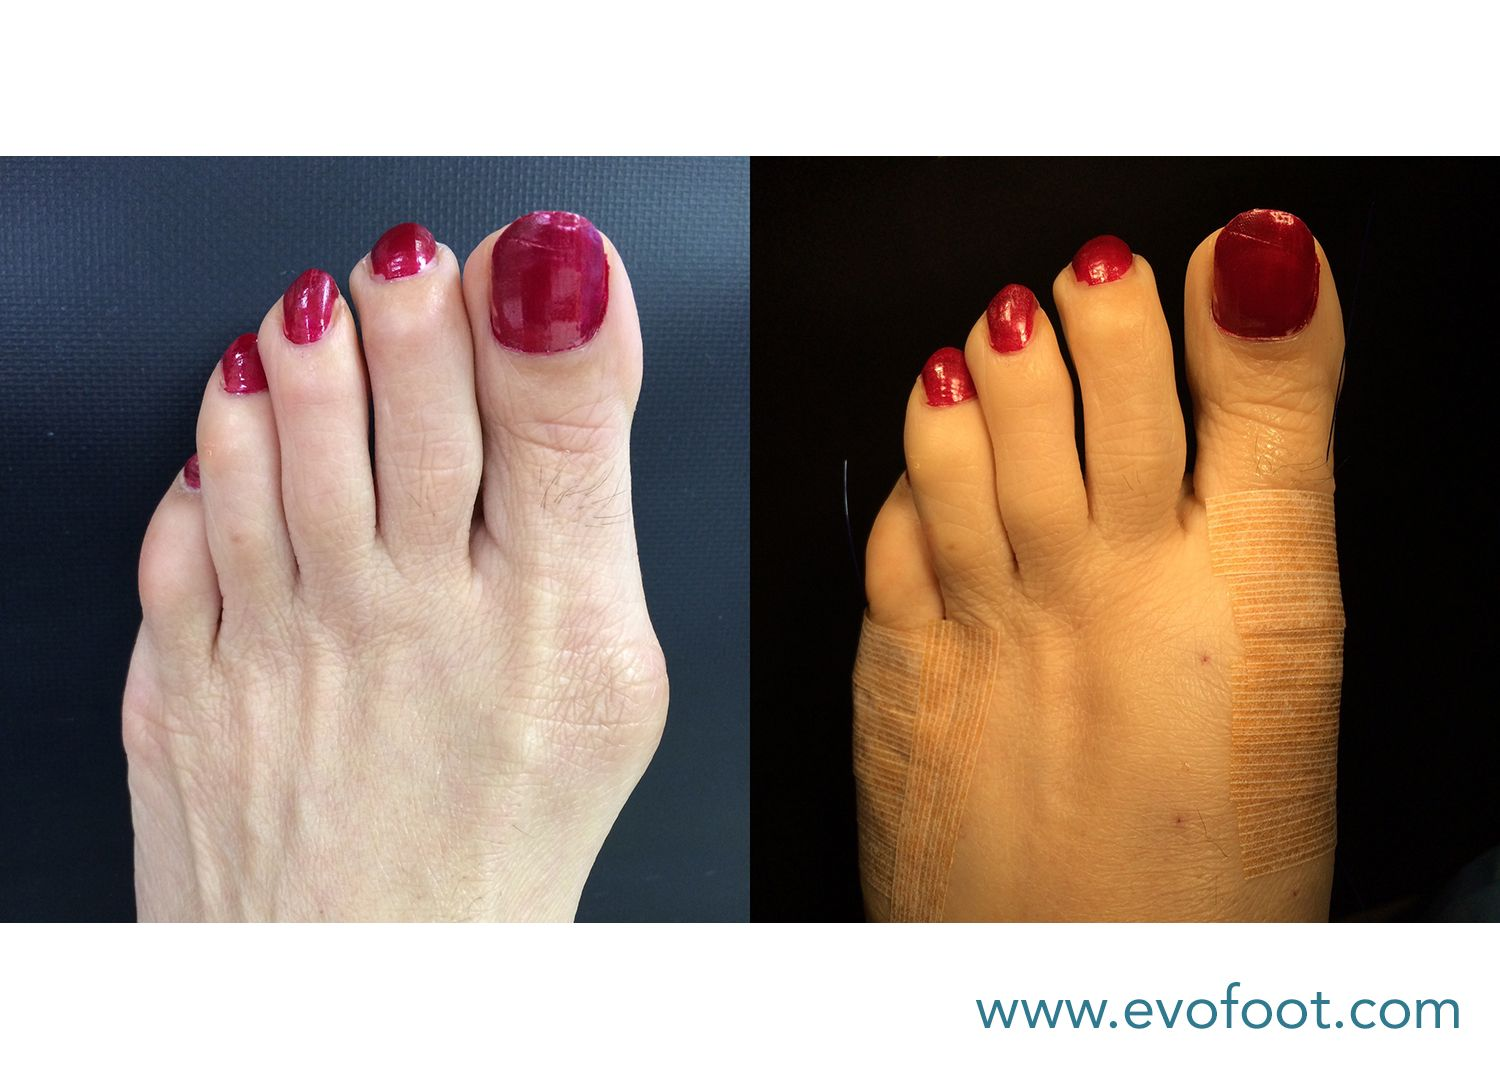 Bunionectomy and Tailor's Bunionectomy before and after